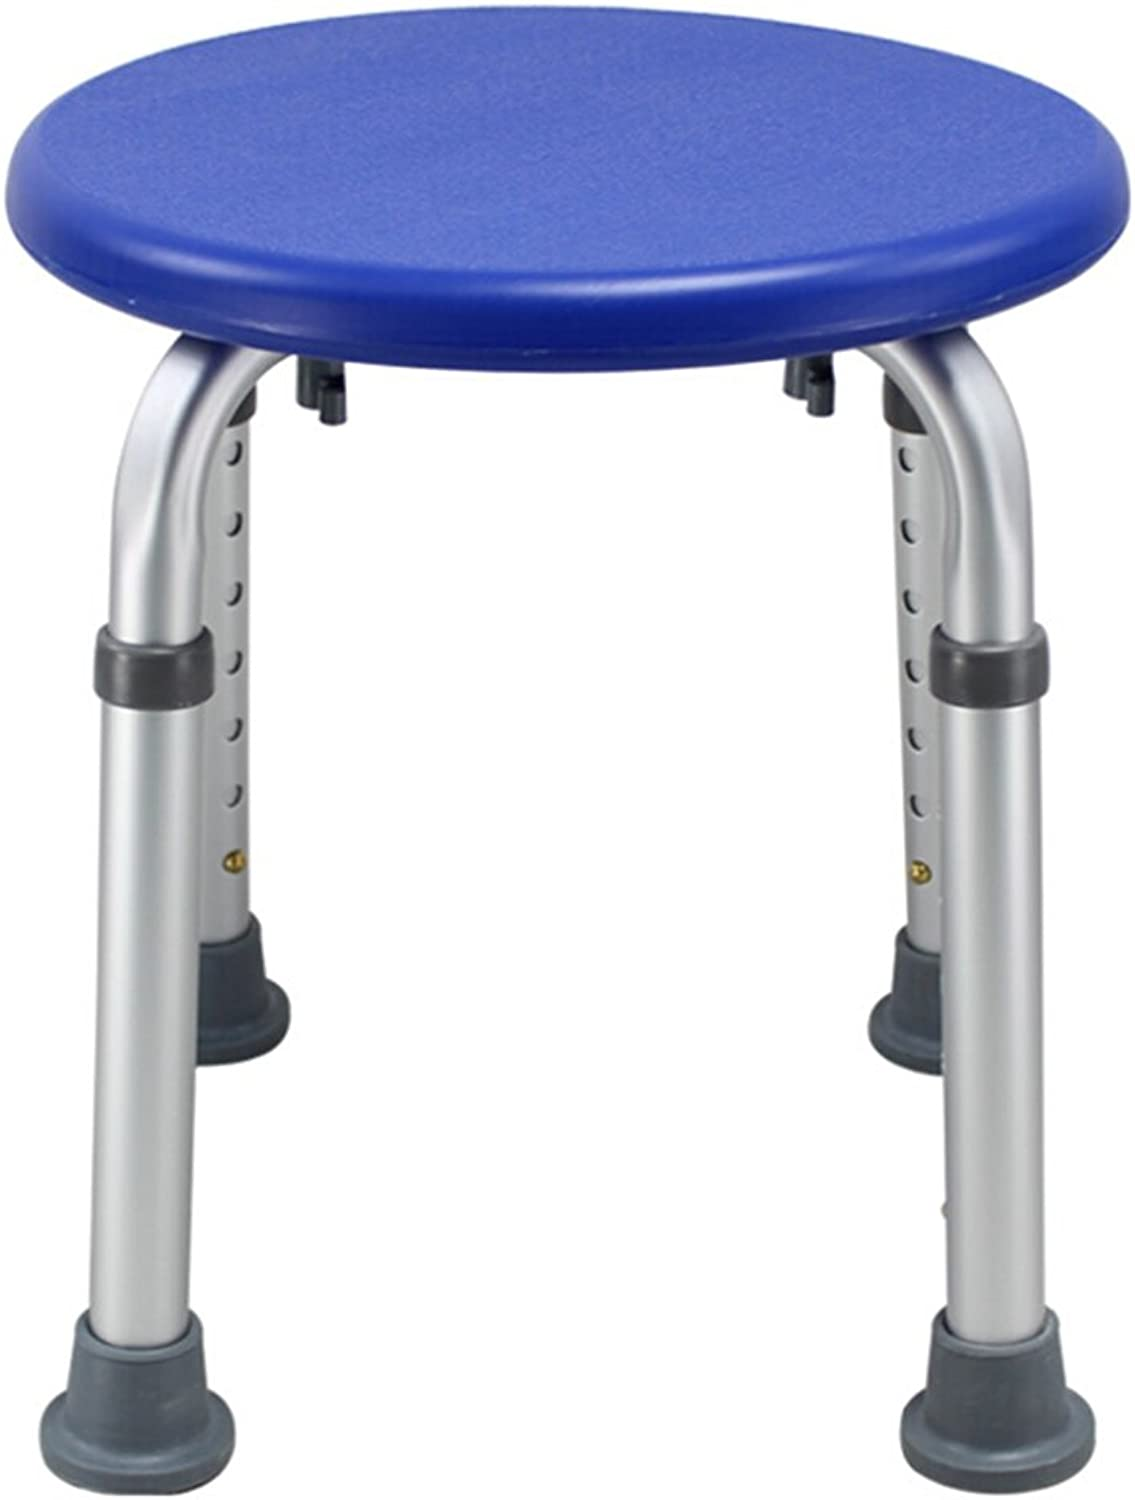 Shower Chair, Height Adjustable Does not Rust Non-Slip Light Bathroom Aluminum Alloy Bath Chair White, Green, bluee Safety Portable (color    3)